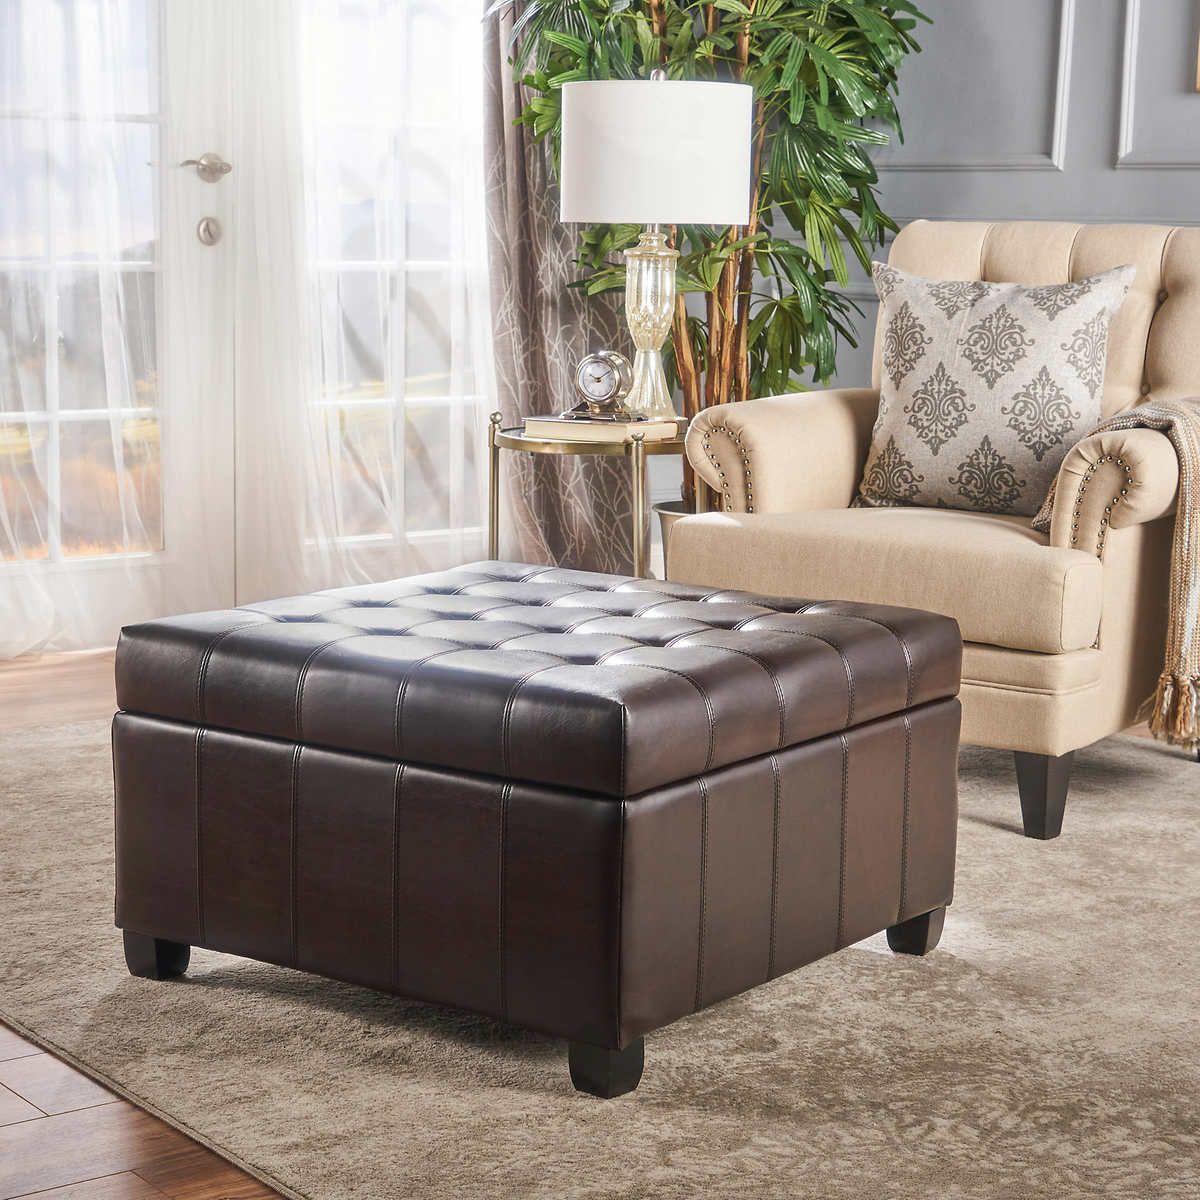 Ottoman turns into chair - Isabella Bonded Leather Storage Ottoman